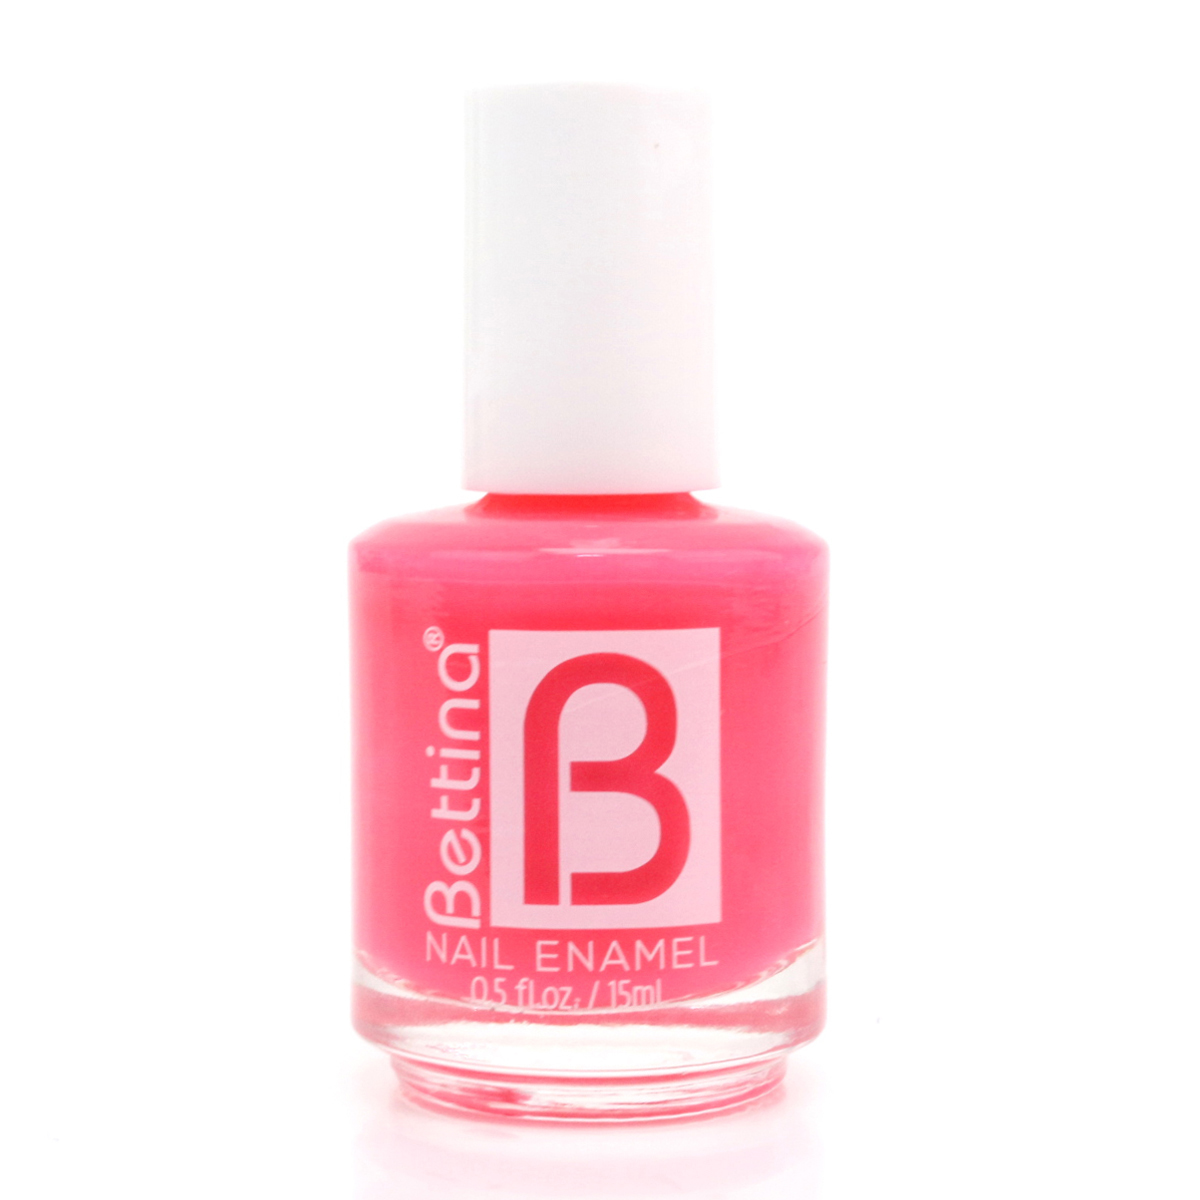 Nails – Bettina Cosmetics